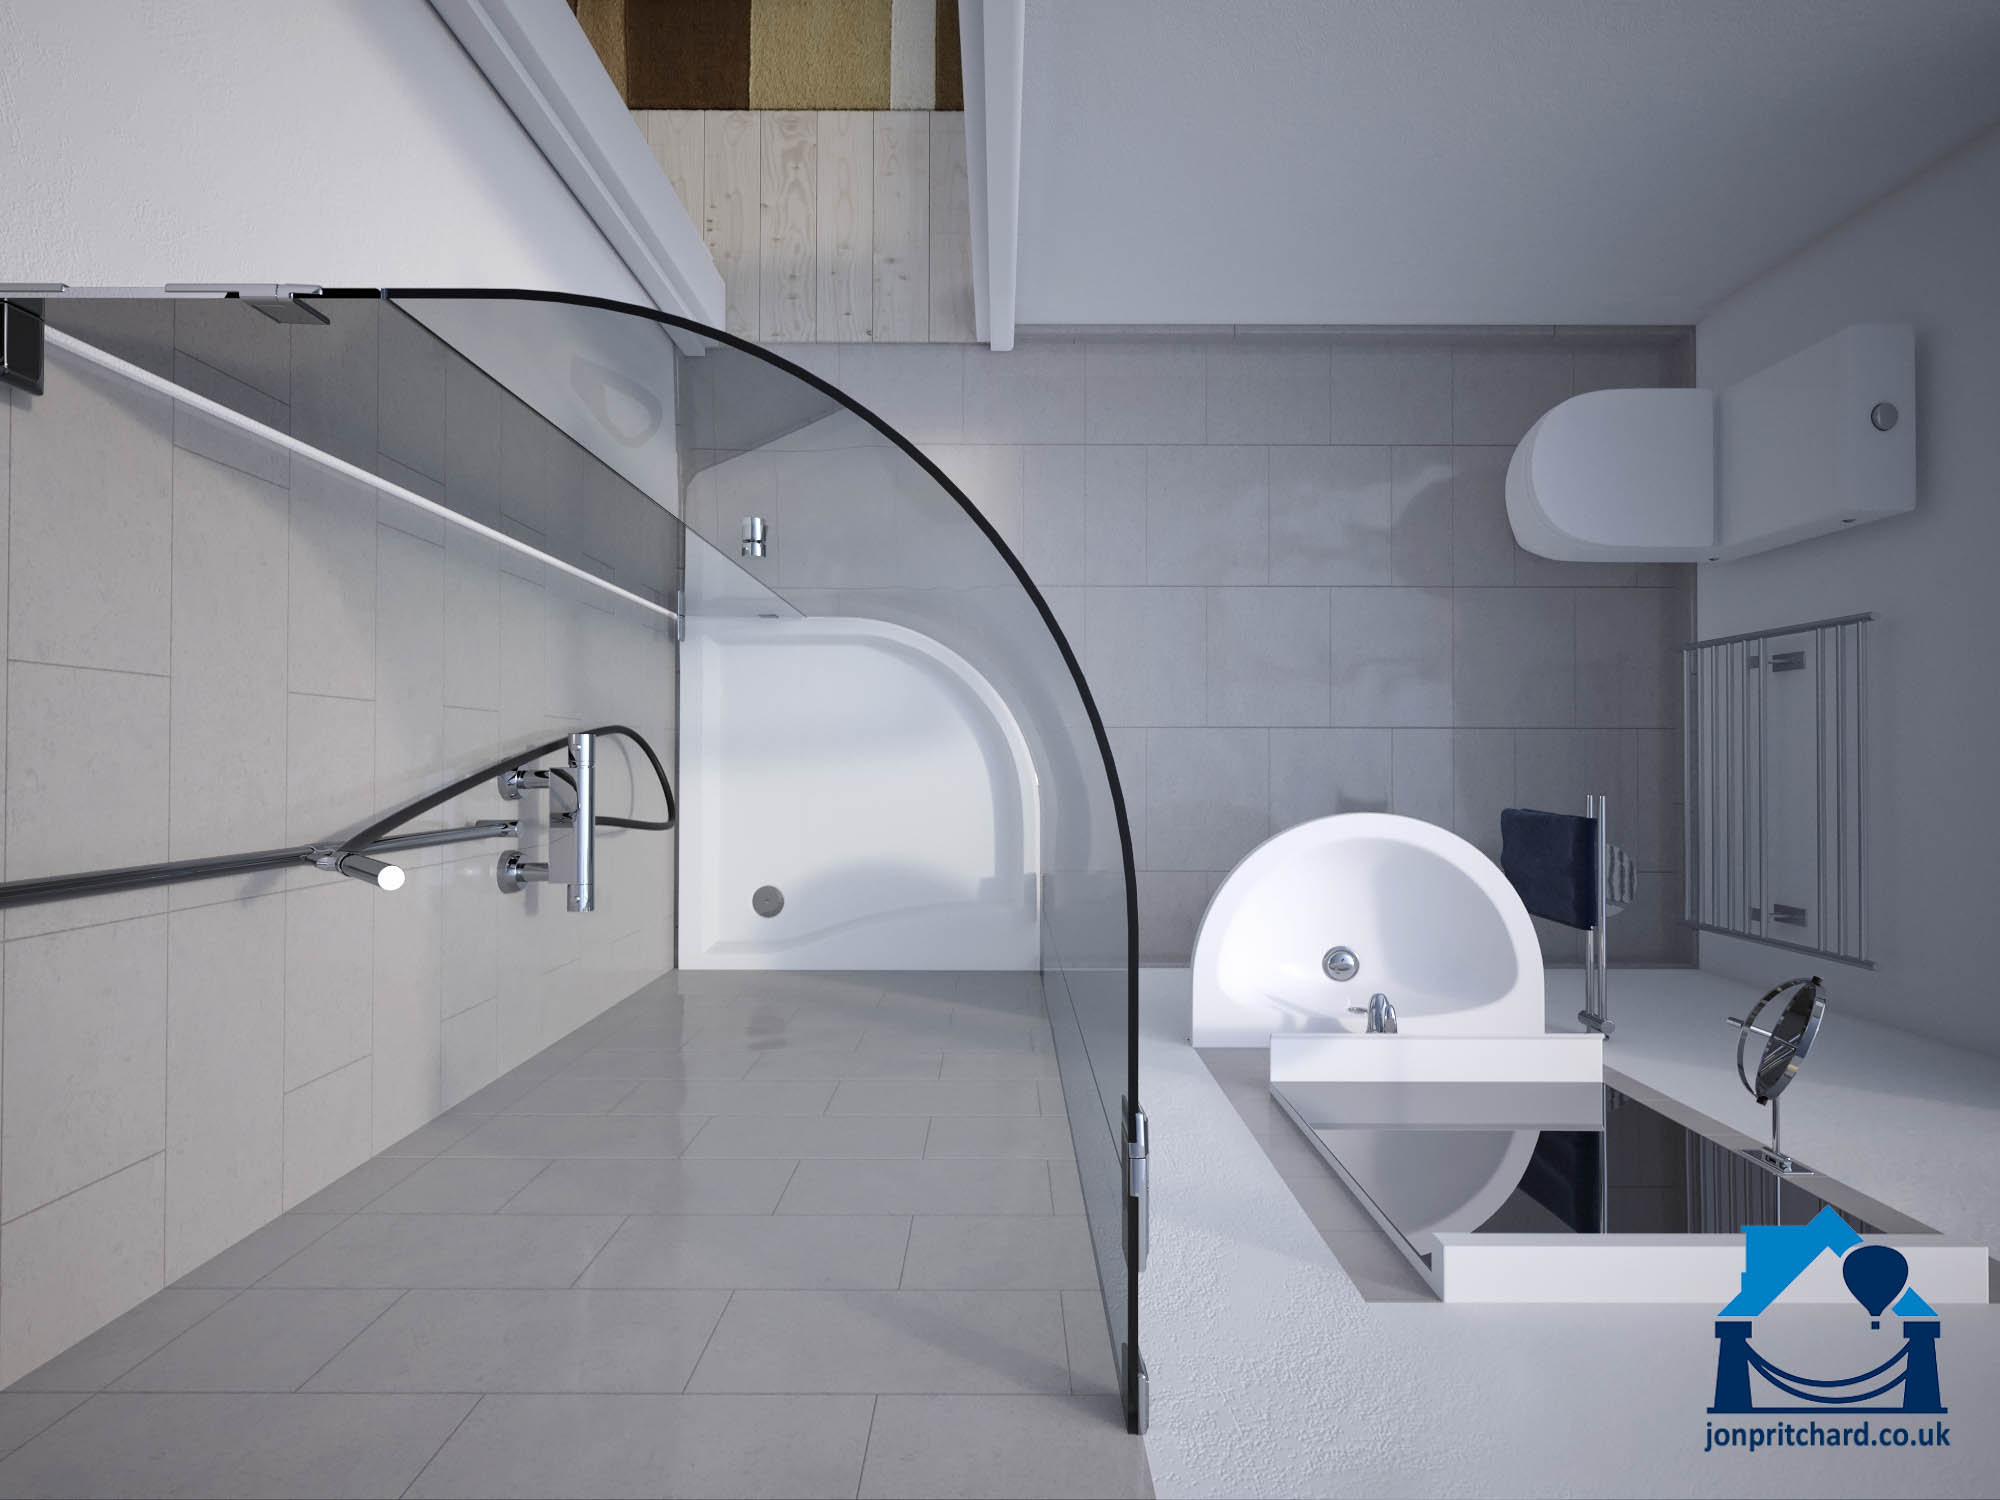 Aerial floor plan view of a small shower room showing curved corner shower unit with curved glass screen, semi-circular basinc and similarly styled loo.